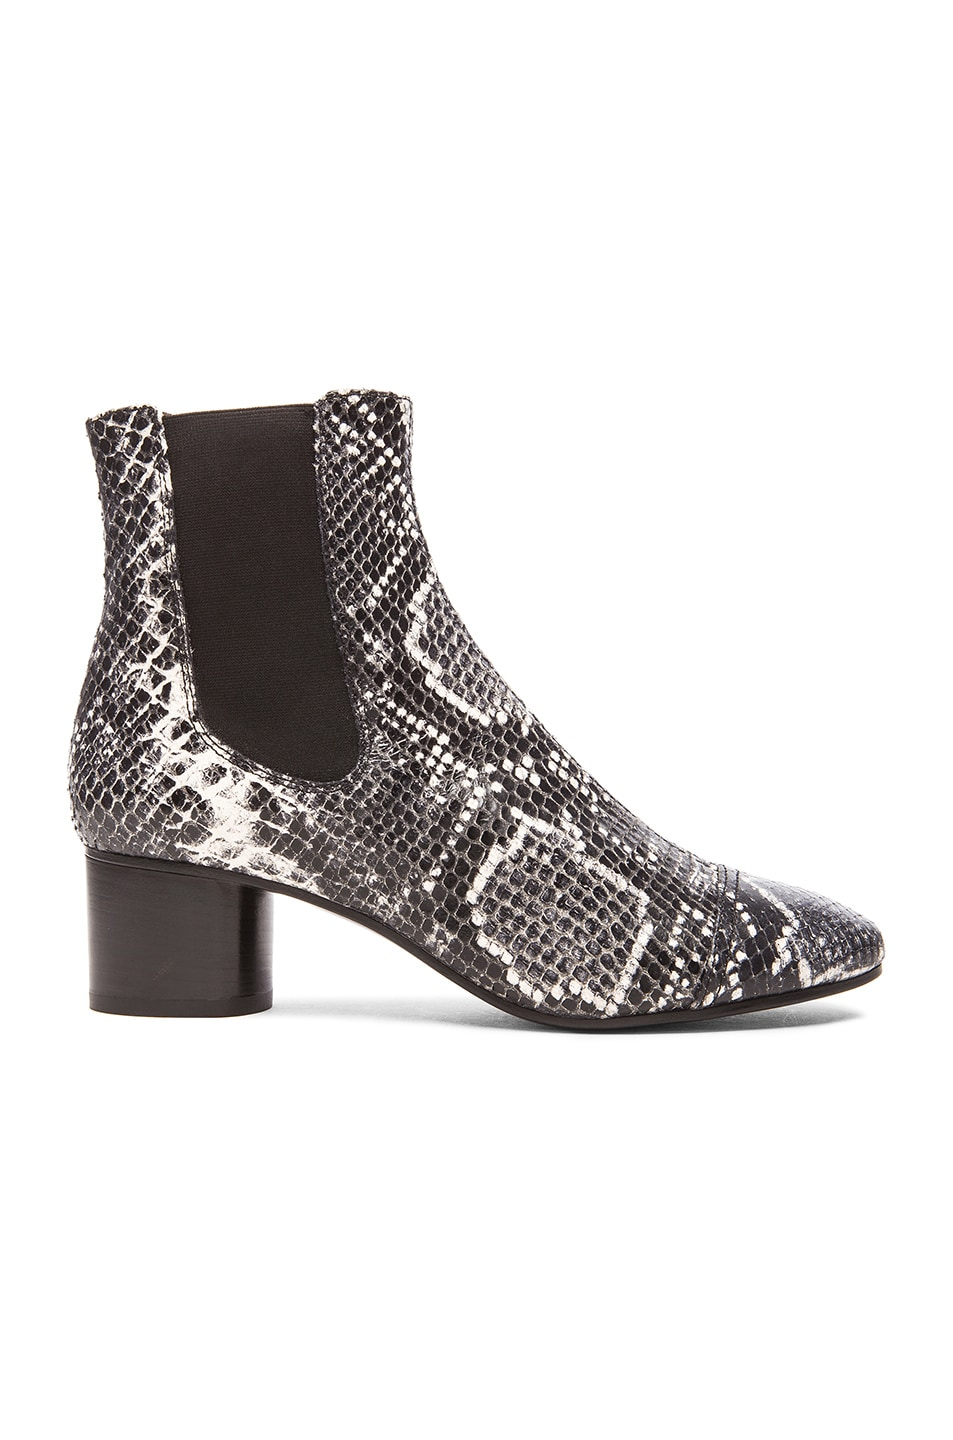 Image 1 of Isabel Marant Danae Printed Python Leather Boots in Grey